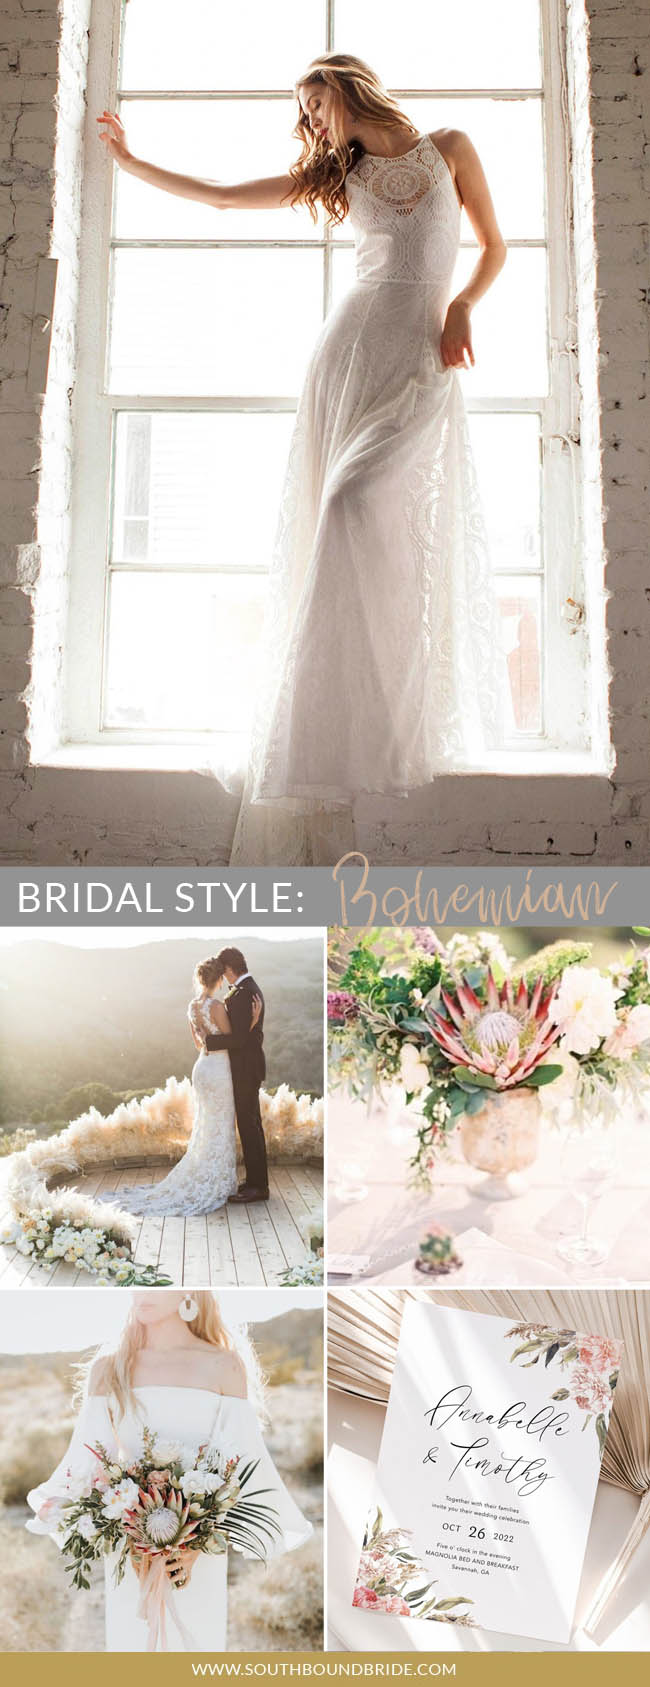 What's Your Bridal Style? Bohemian